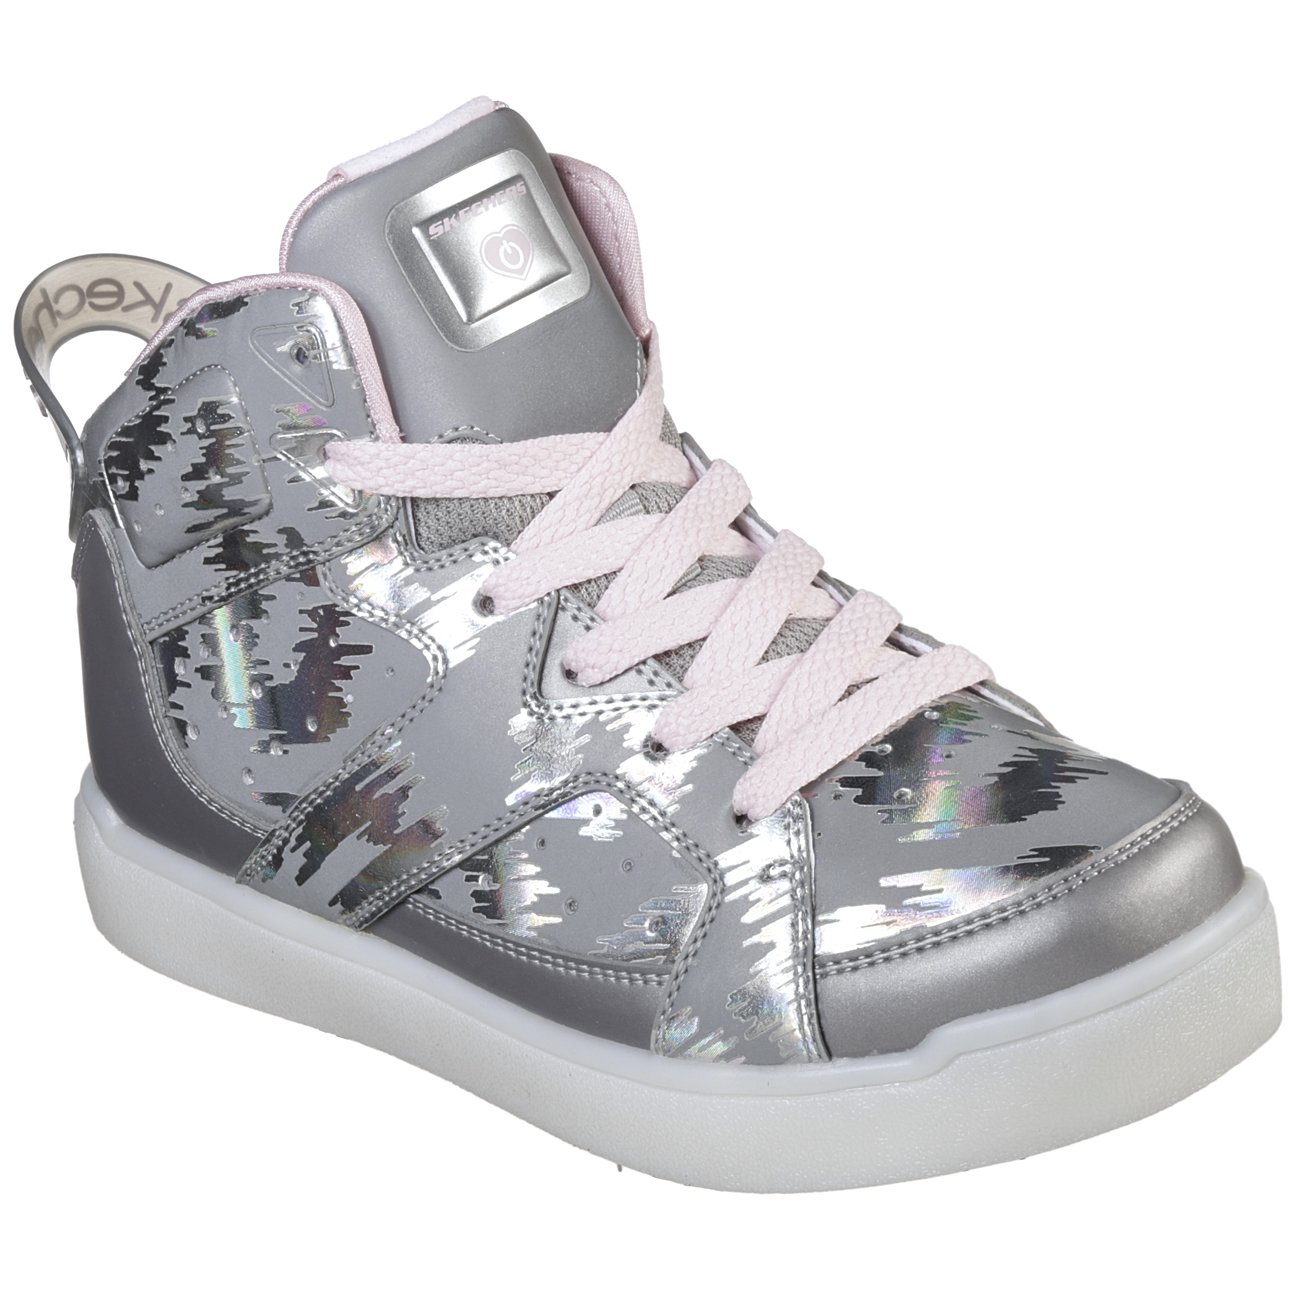 Unisex Kids Skechers S Lights Energy Lights E-Pro Reflecti-Fab